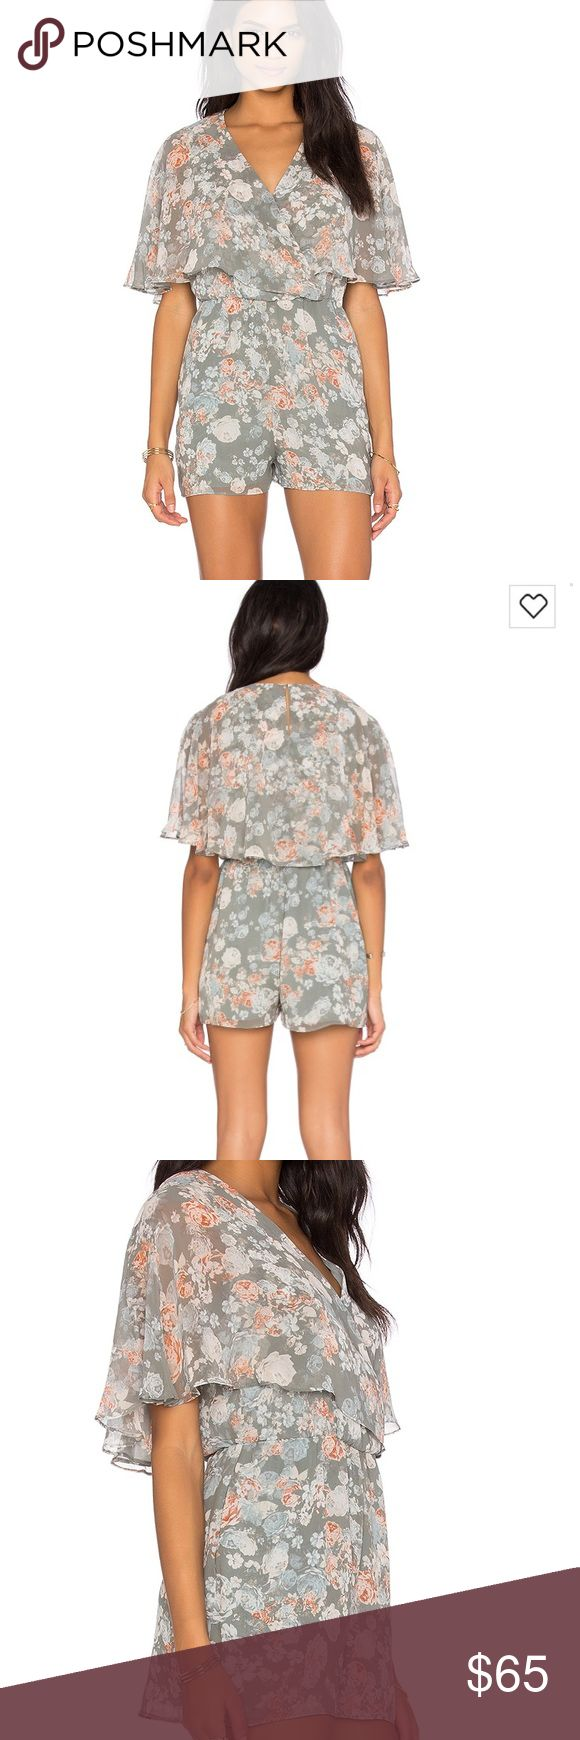 BCBGeneration Floral Romper in Slate Multi Worn once to brunch, in like new condition. Purchased from Revolve Clothing. No trades. BCBGeneration Pants Jumpsuits & Rompers